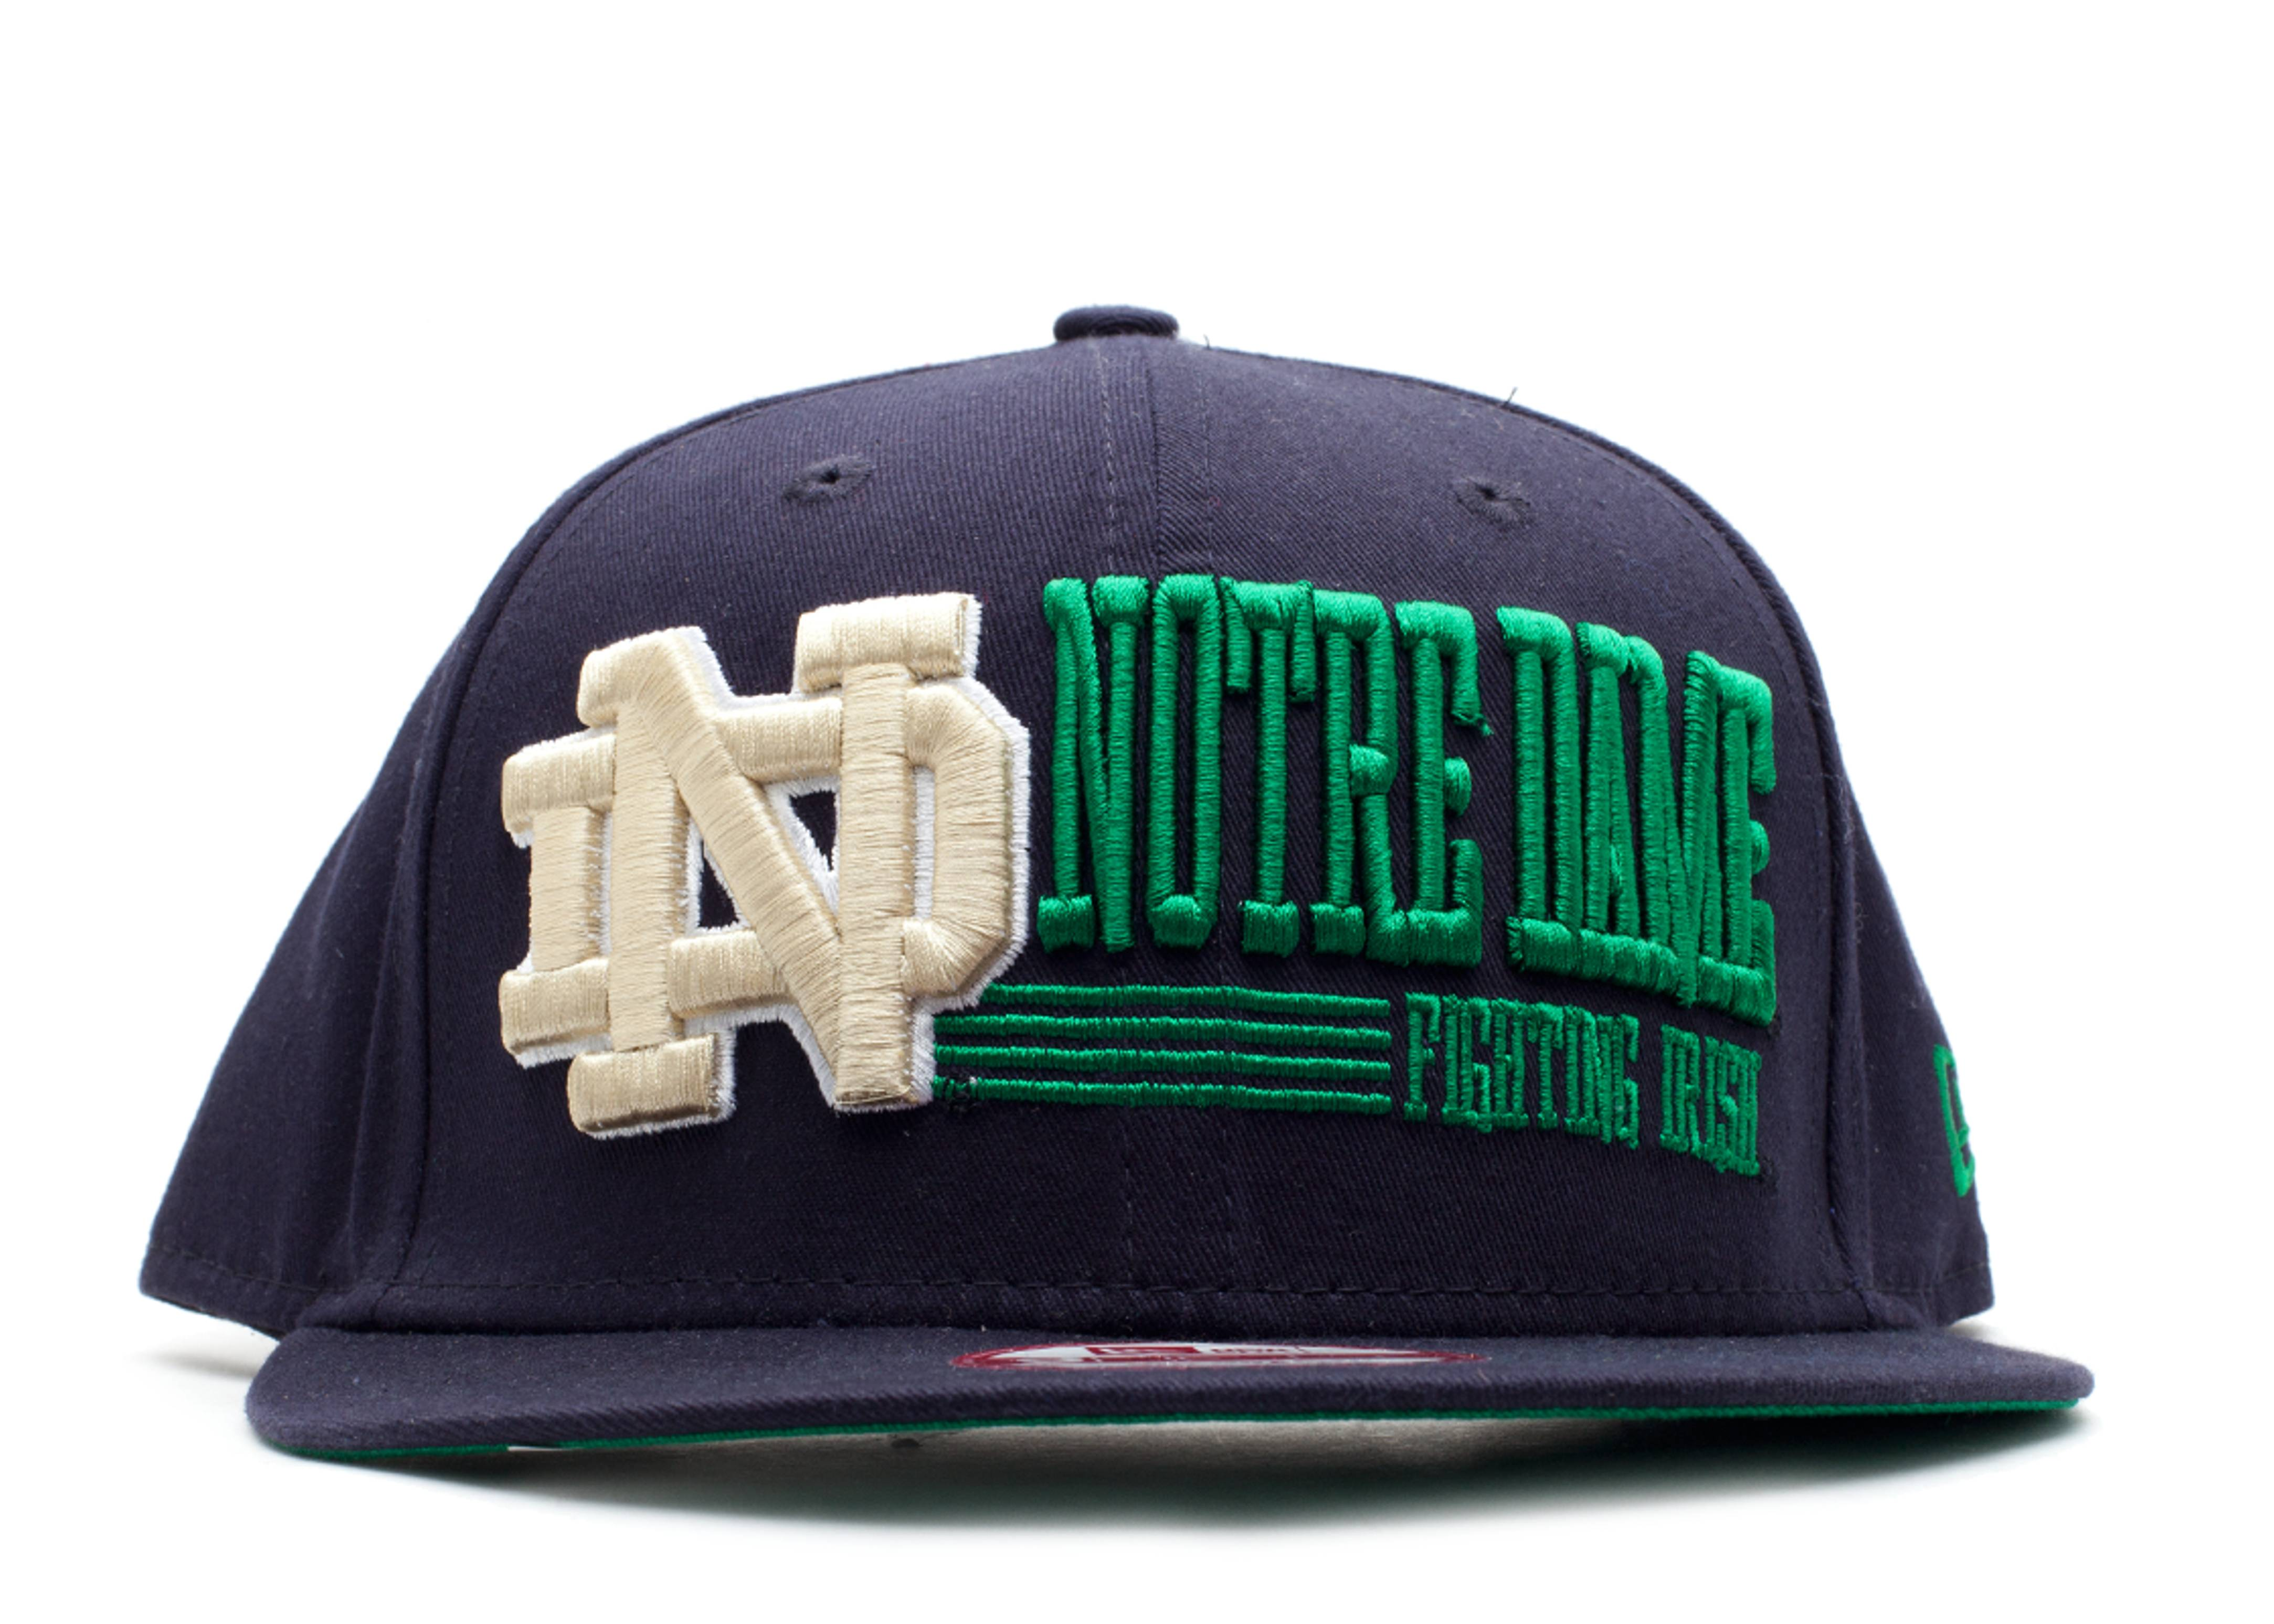 notre dame fighting irish snap-back